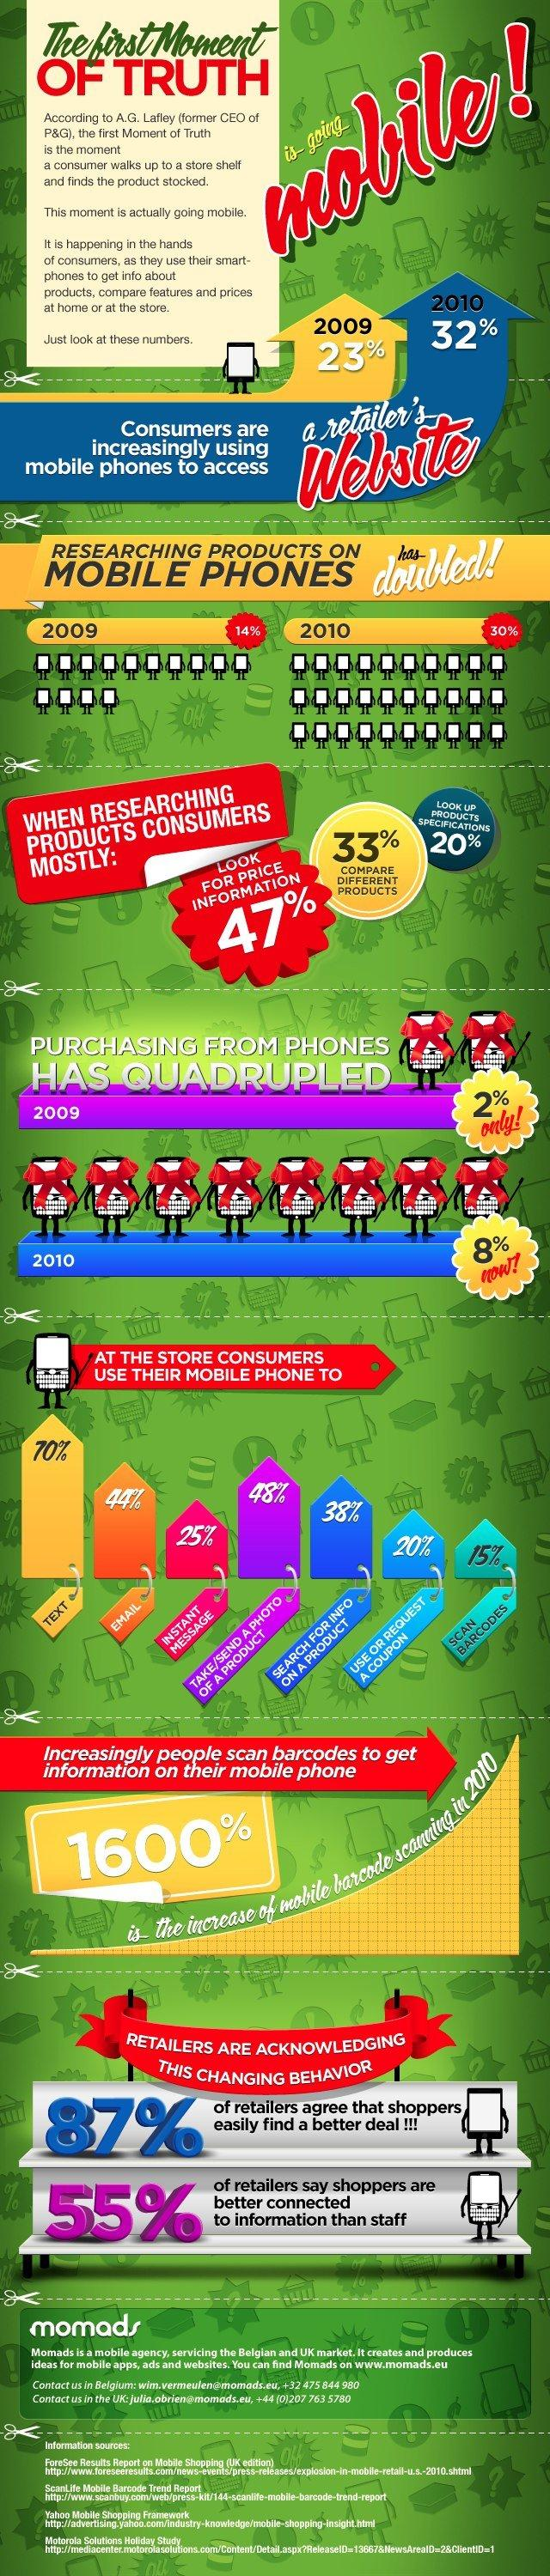 Mobile Marketing 2010